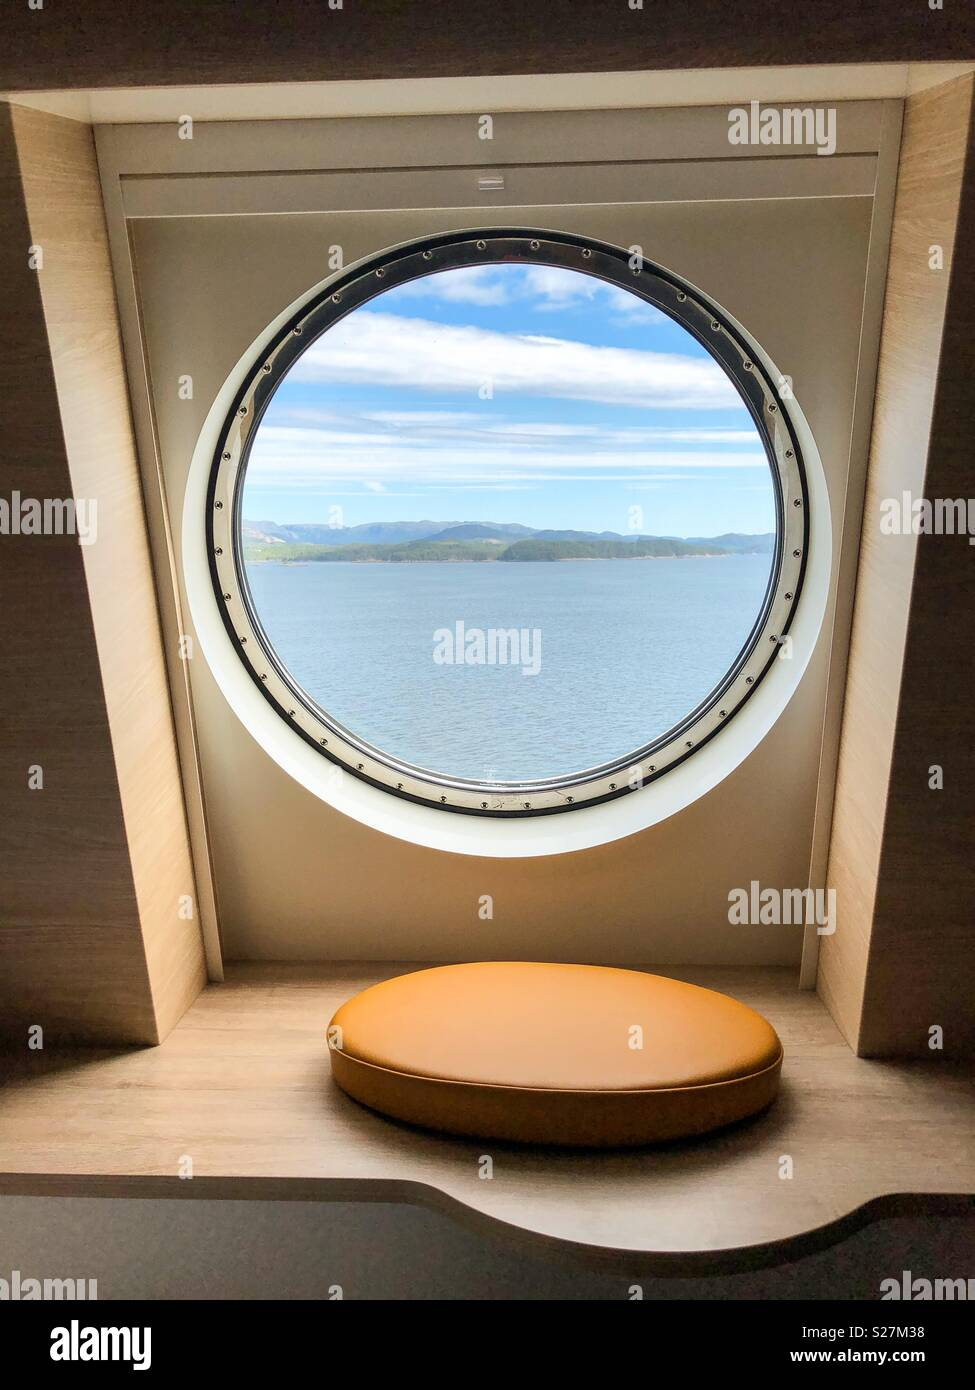 View through a porthole off the coast of Norway. - Stock Image